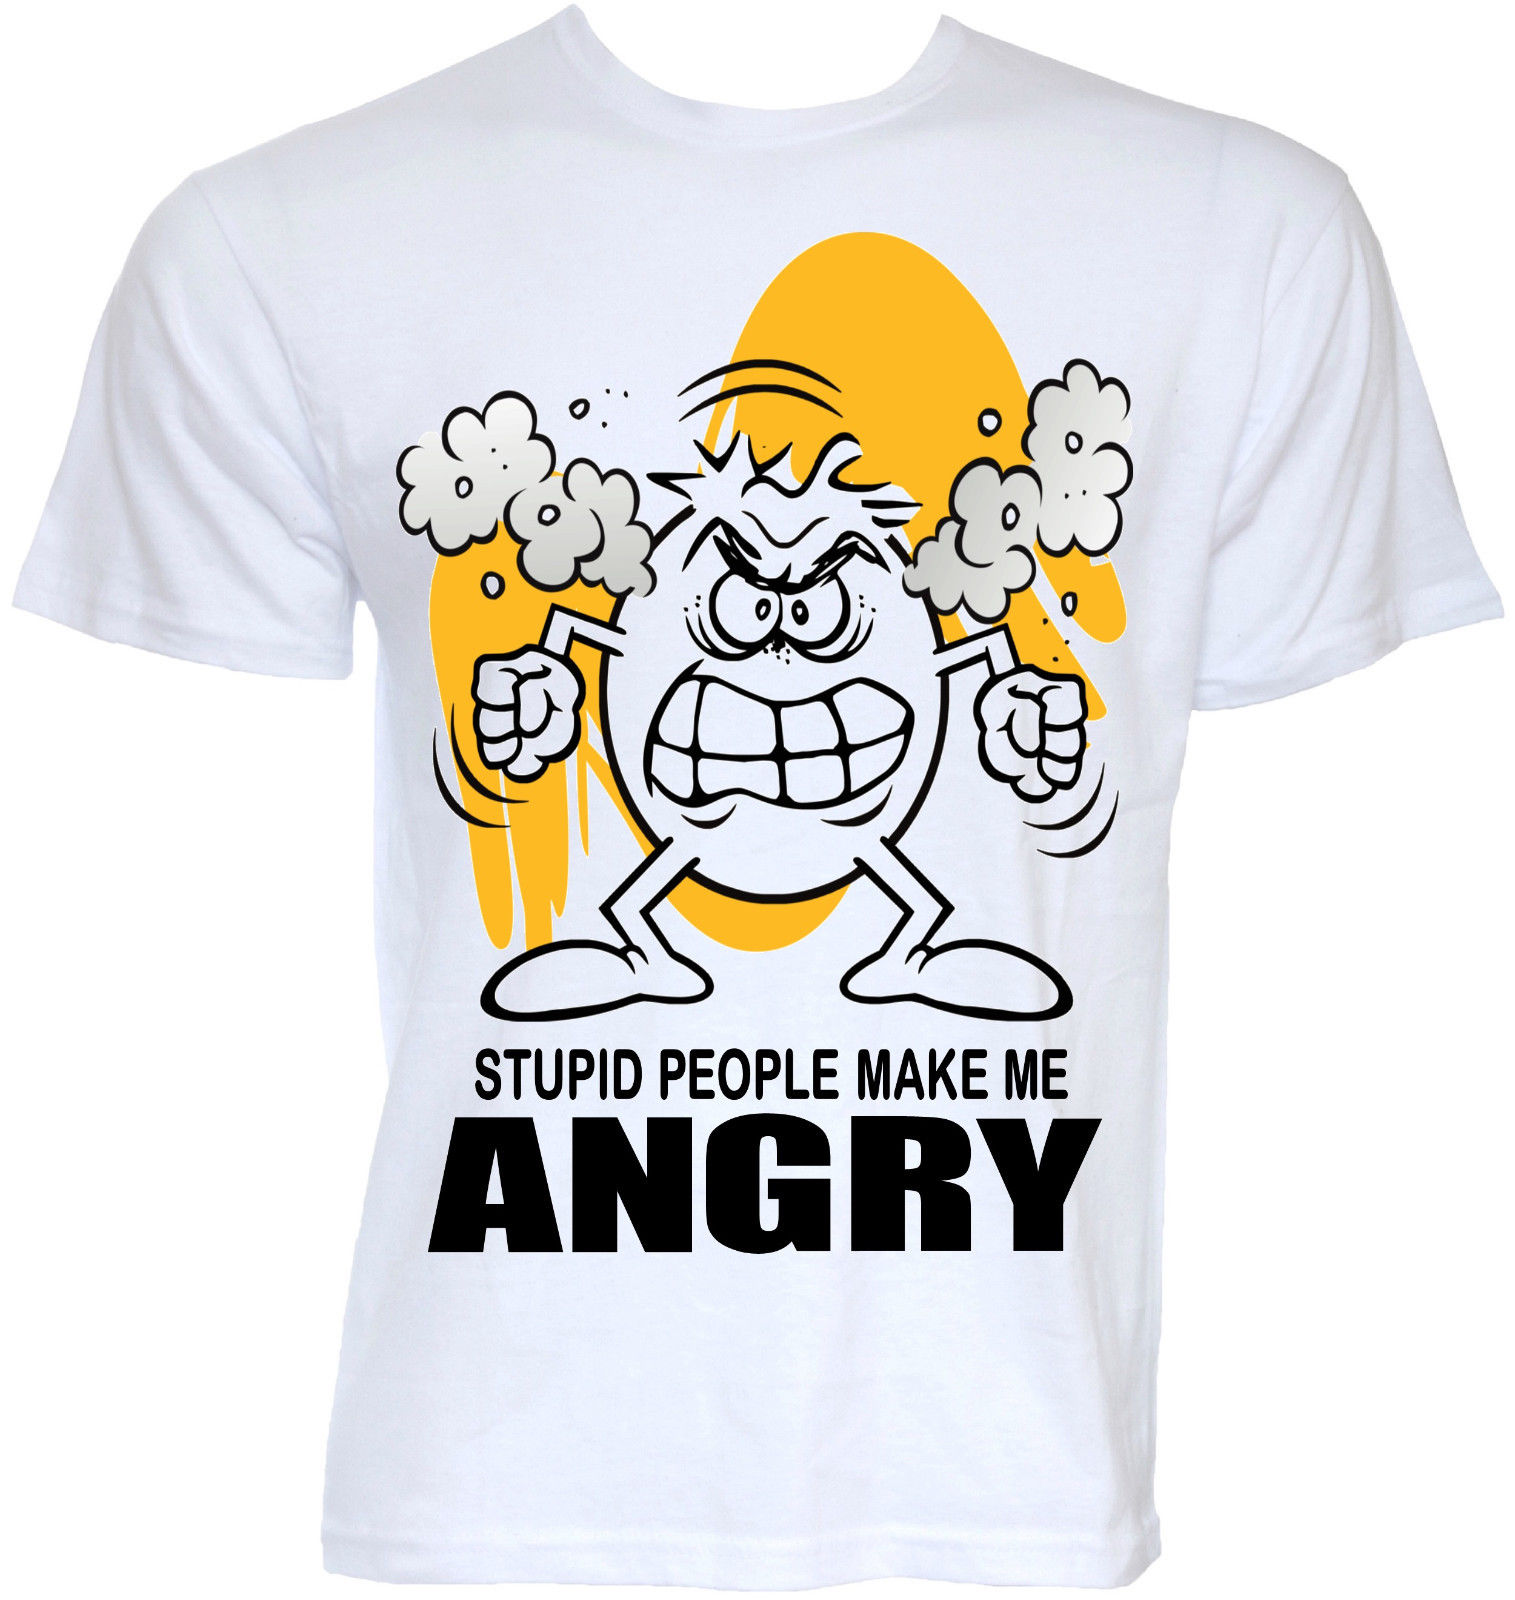 FUNNY COOL NOVELTY ANGRY BAD TEMPER STUPID JOKE RUDE T-SHIRTS GIFTS FOR DAD HIM Short Sleeve Hip Hop Tee T Shirt High Quality